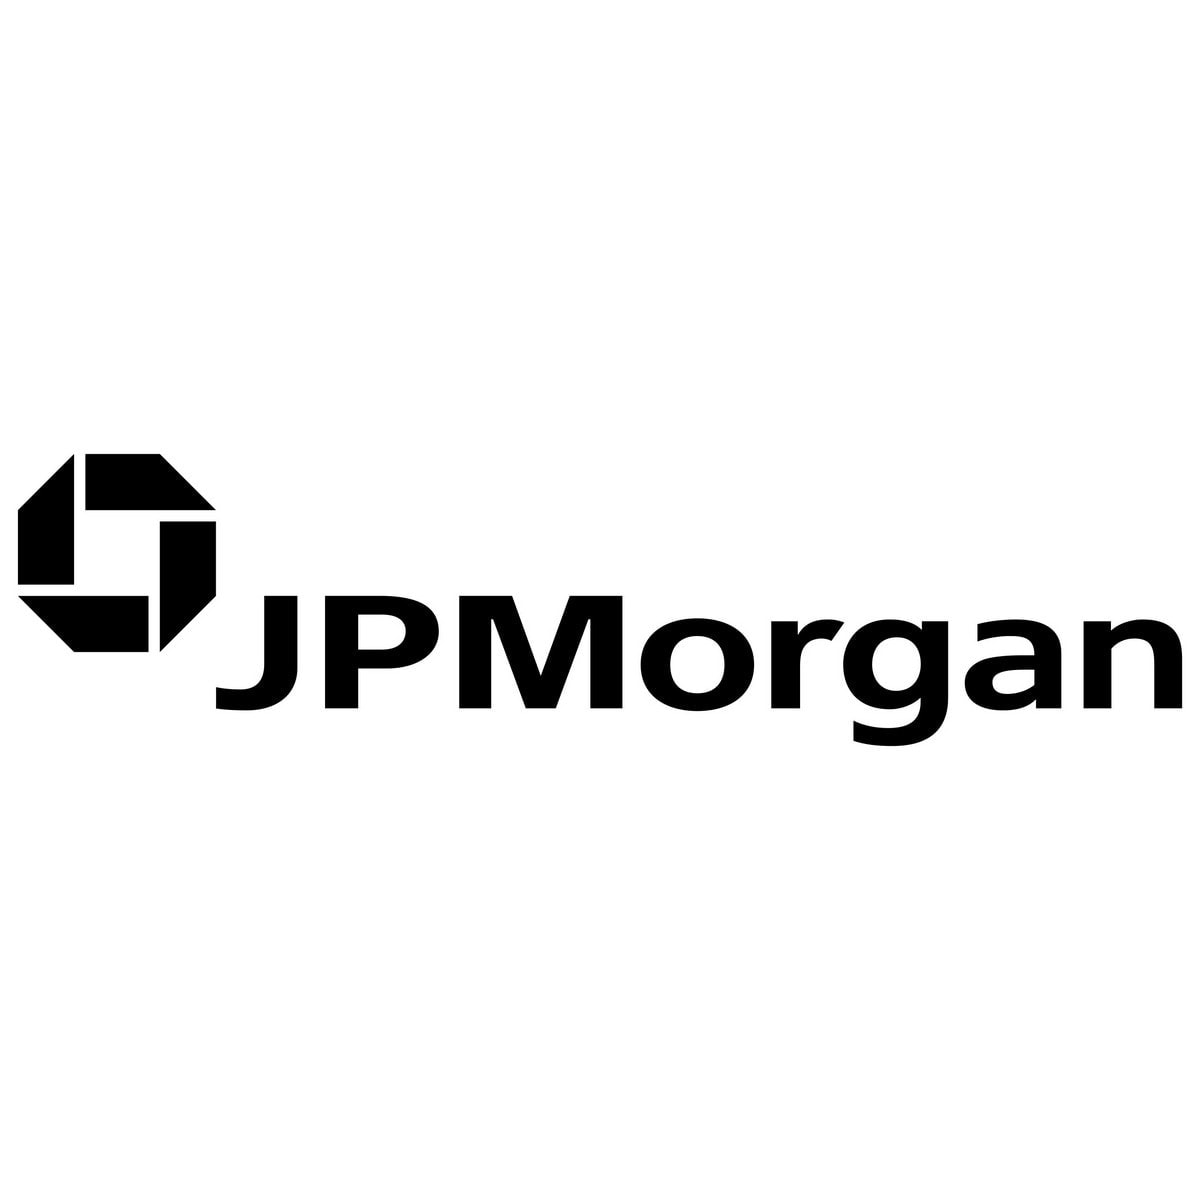 SWOT Analysis of JP Morgan